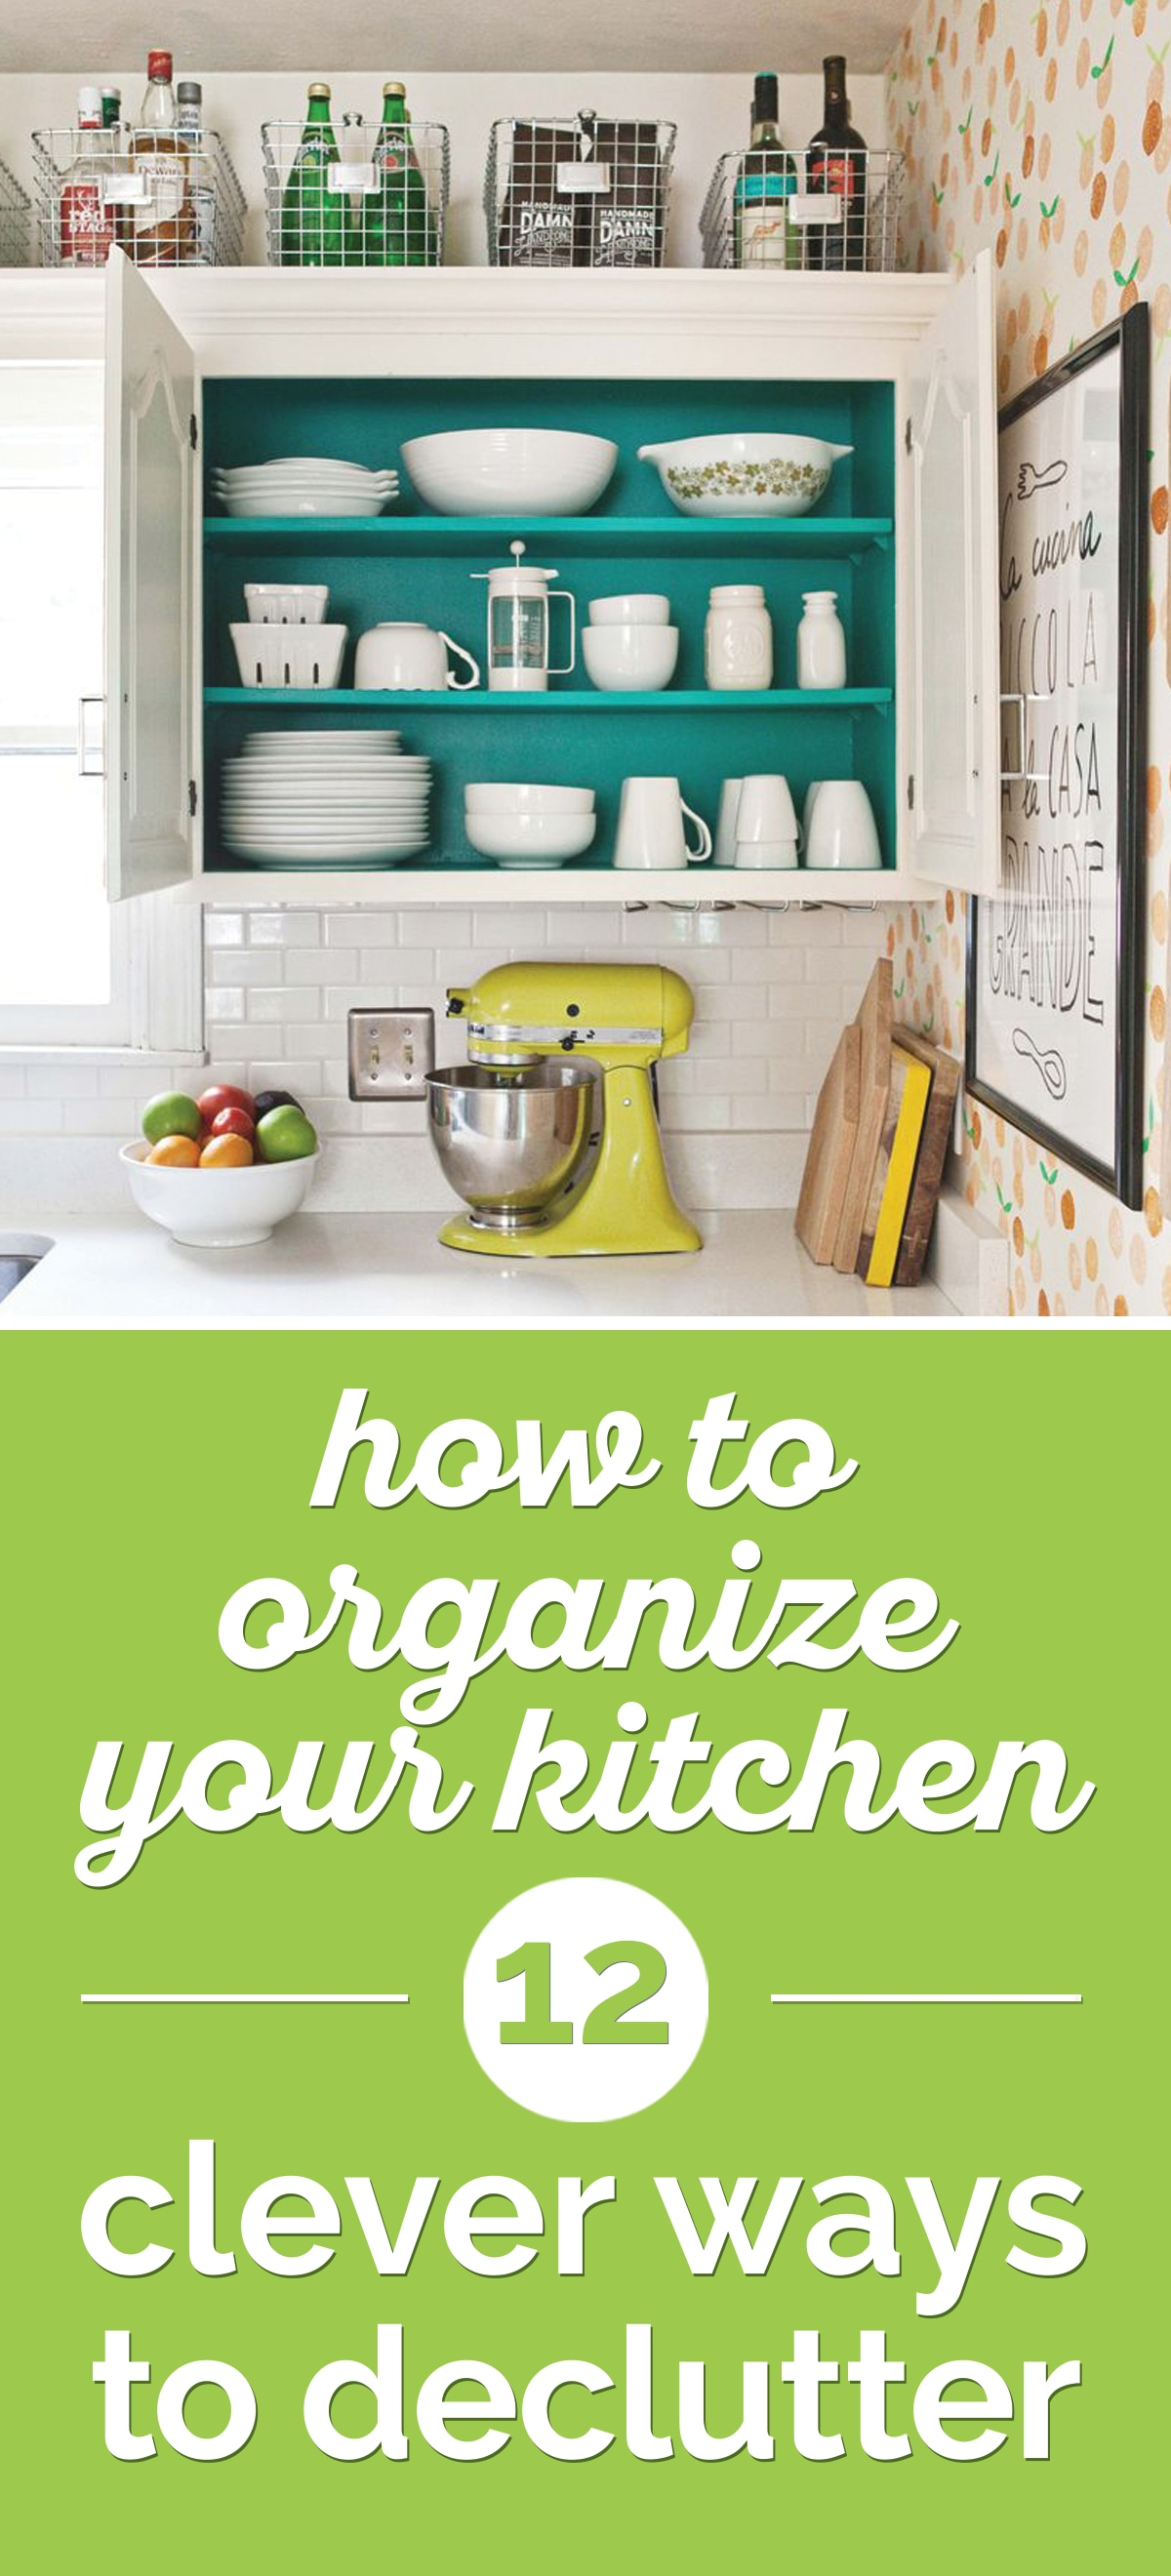 How to Organize Your Kitchen: 12 Clever Ways to Declutter | thegoodstuff